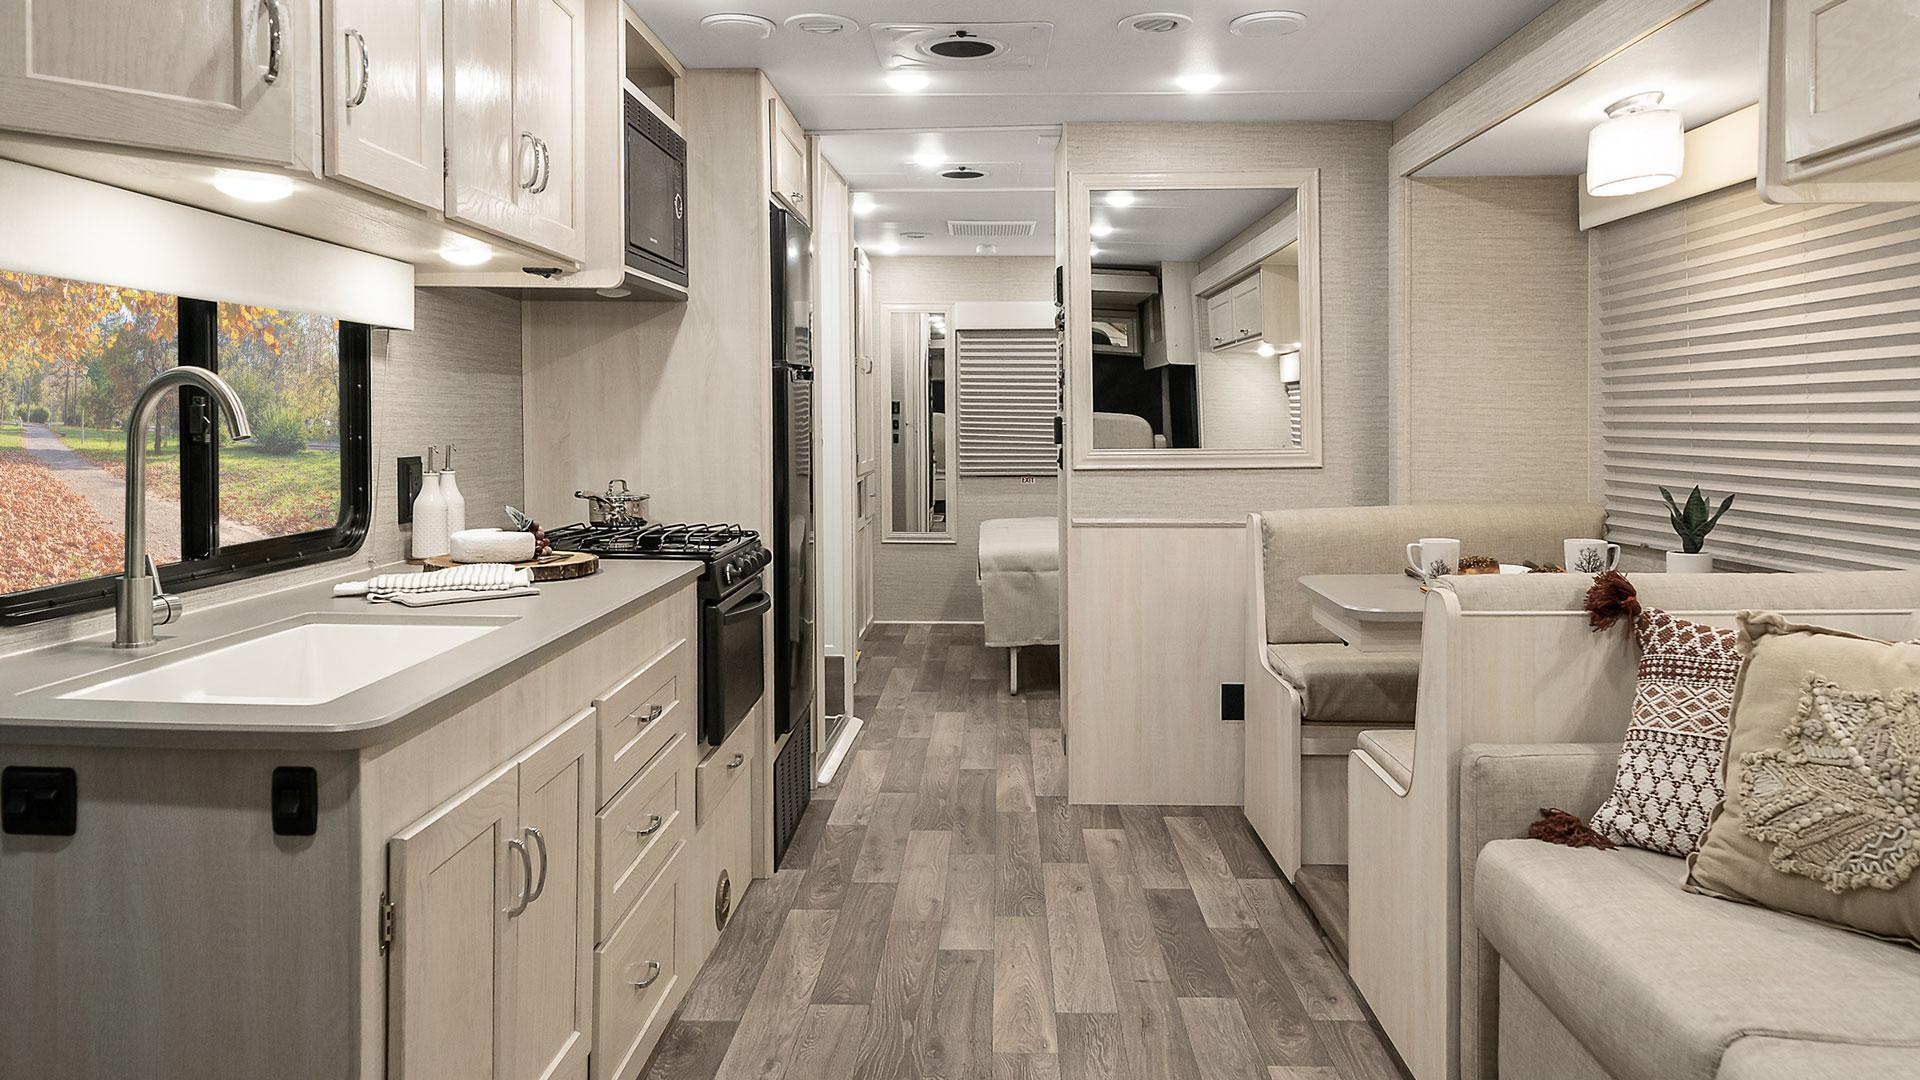 /Files/Images/Winnebago/Products/2020/Intent-AE/ITAE-F2B-20.jpg